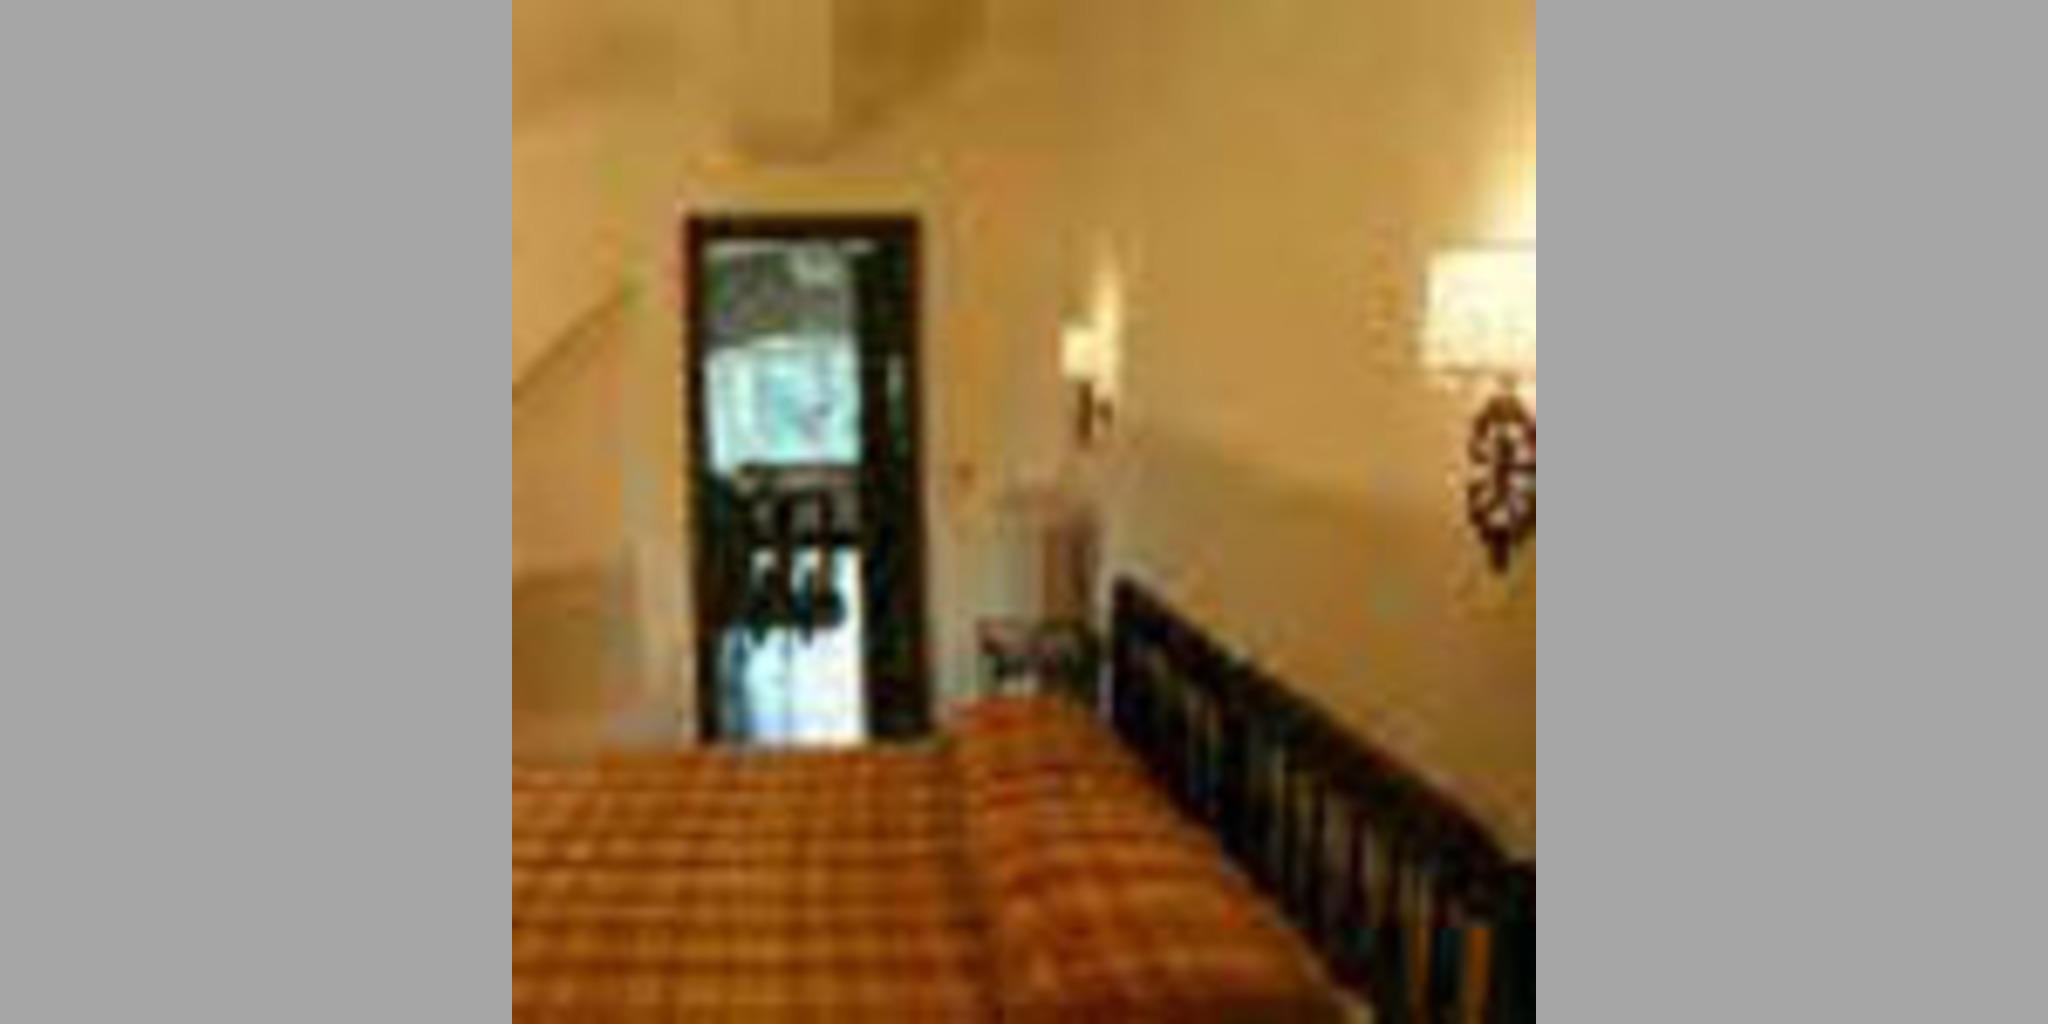 Bed & Breakfast Velletri - Acqua Lucia2